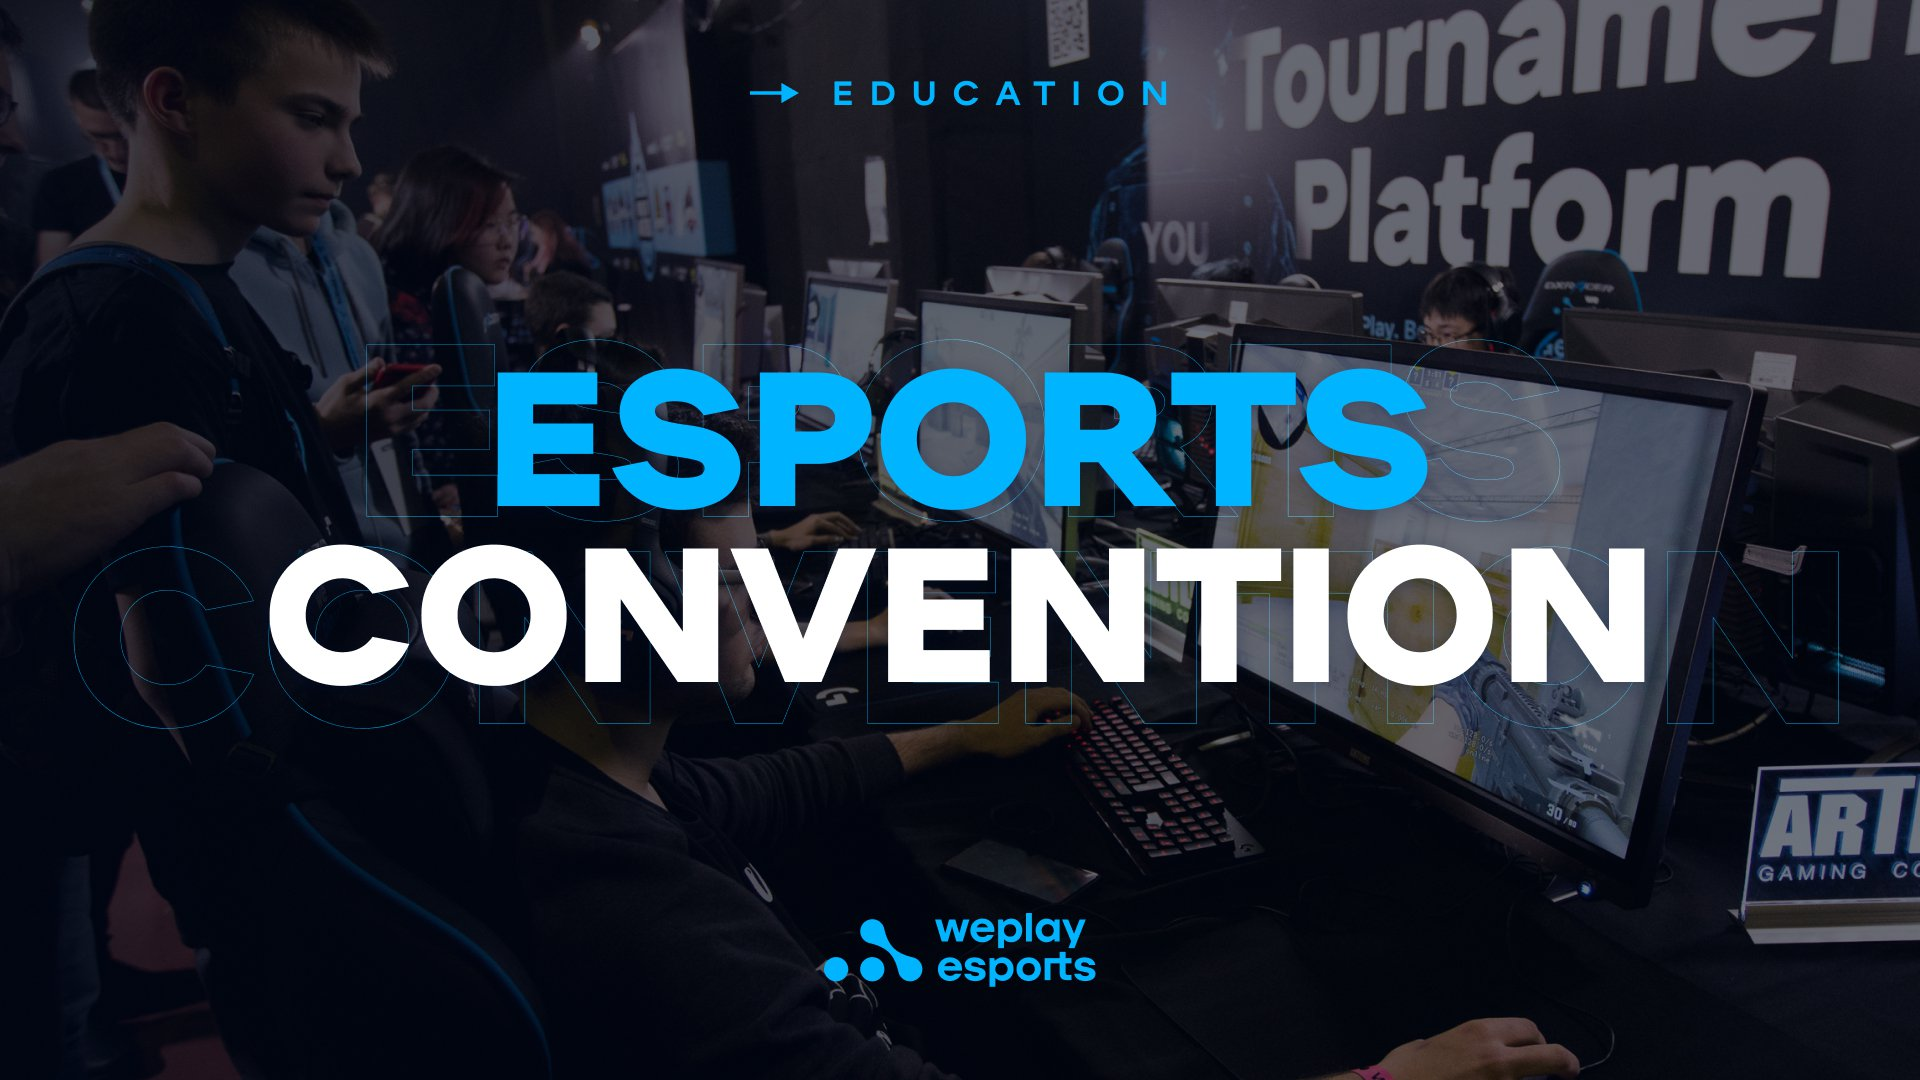 Esports Convention. Image: WePlay Holding